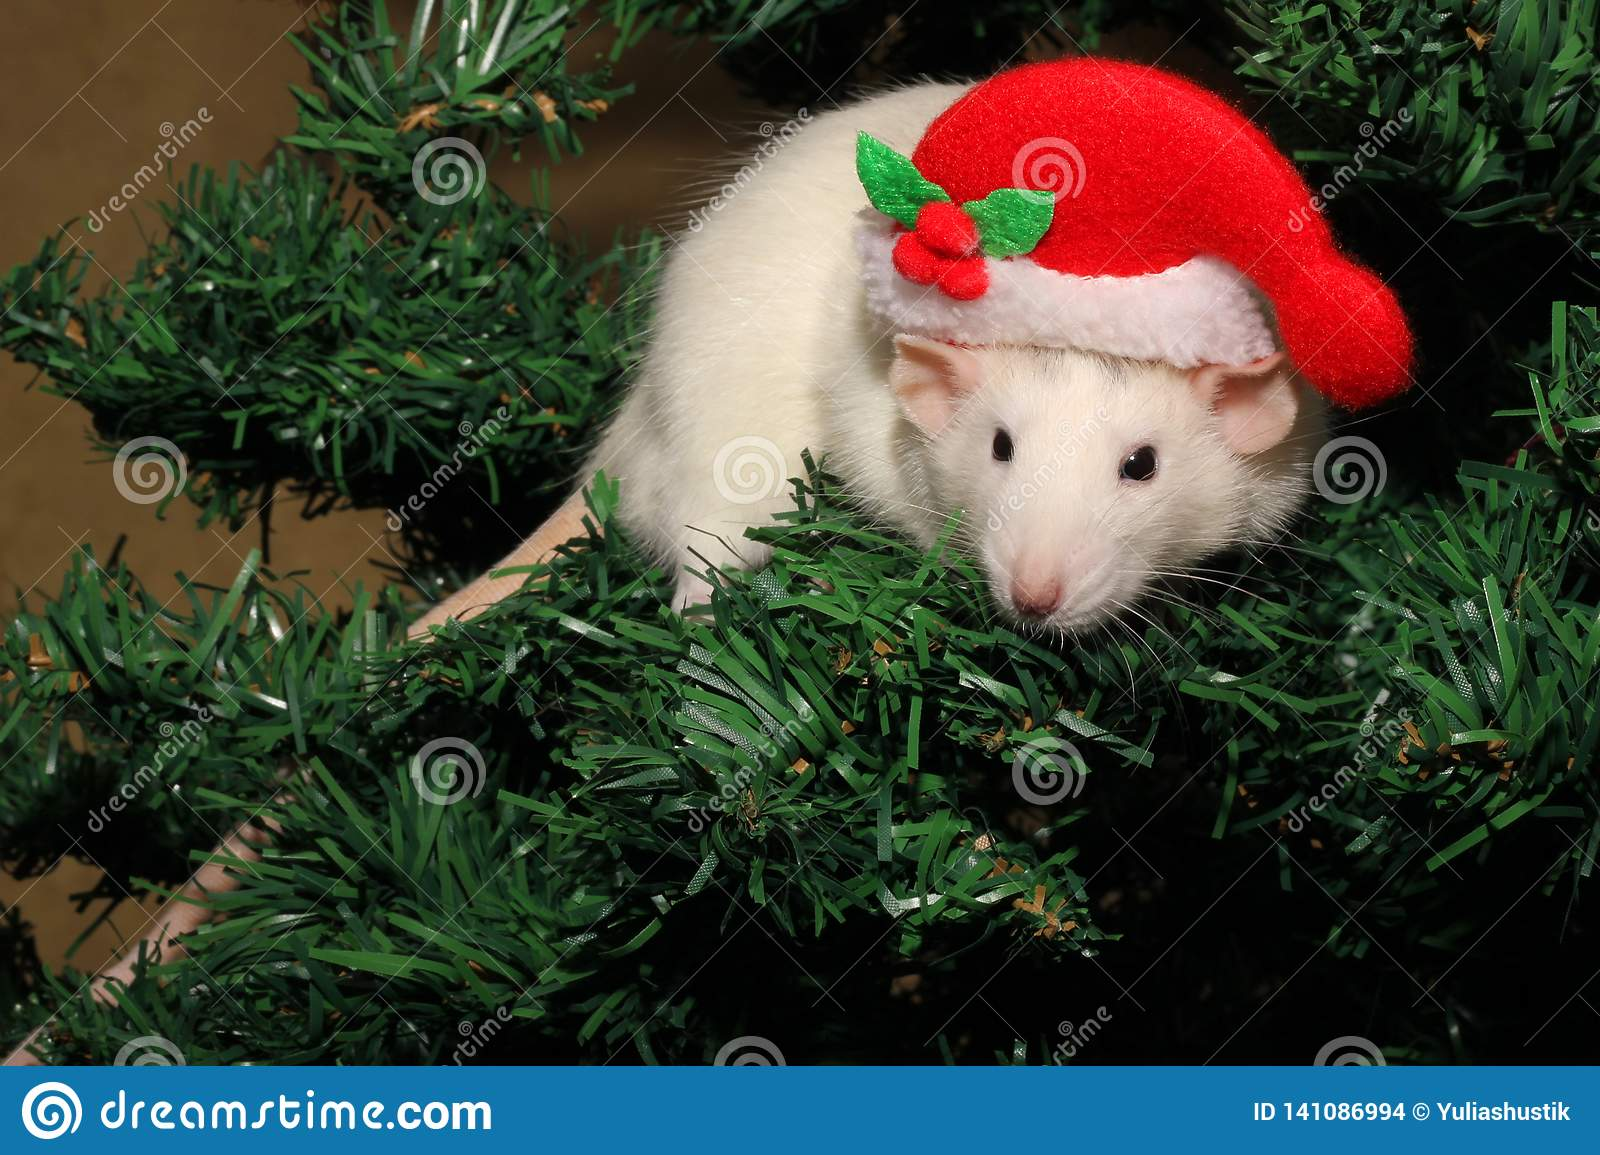 Chinese Christmas.A Rat In A Christmas Hat A Christmas Mouse Symbol Of The